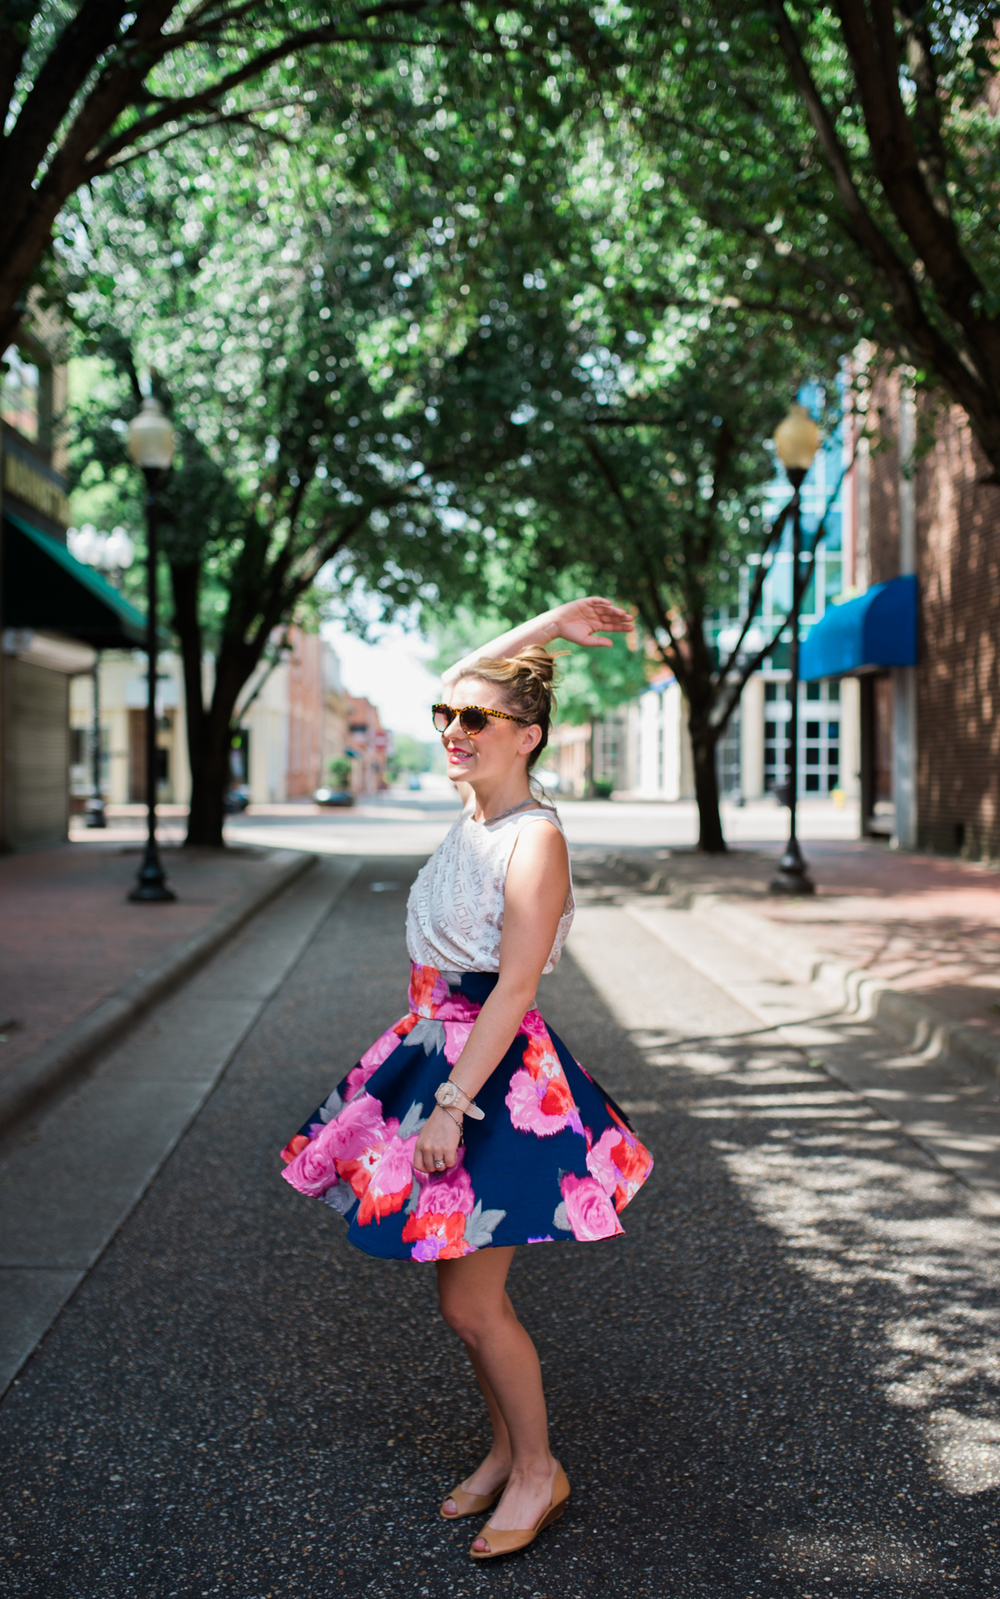 Kelly + Downtown Fayetteville // www.SavannahAshleyPhotography.com